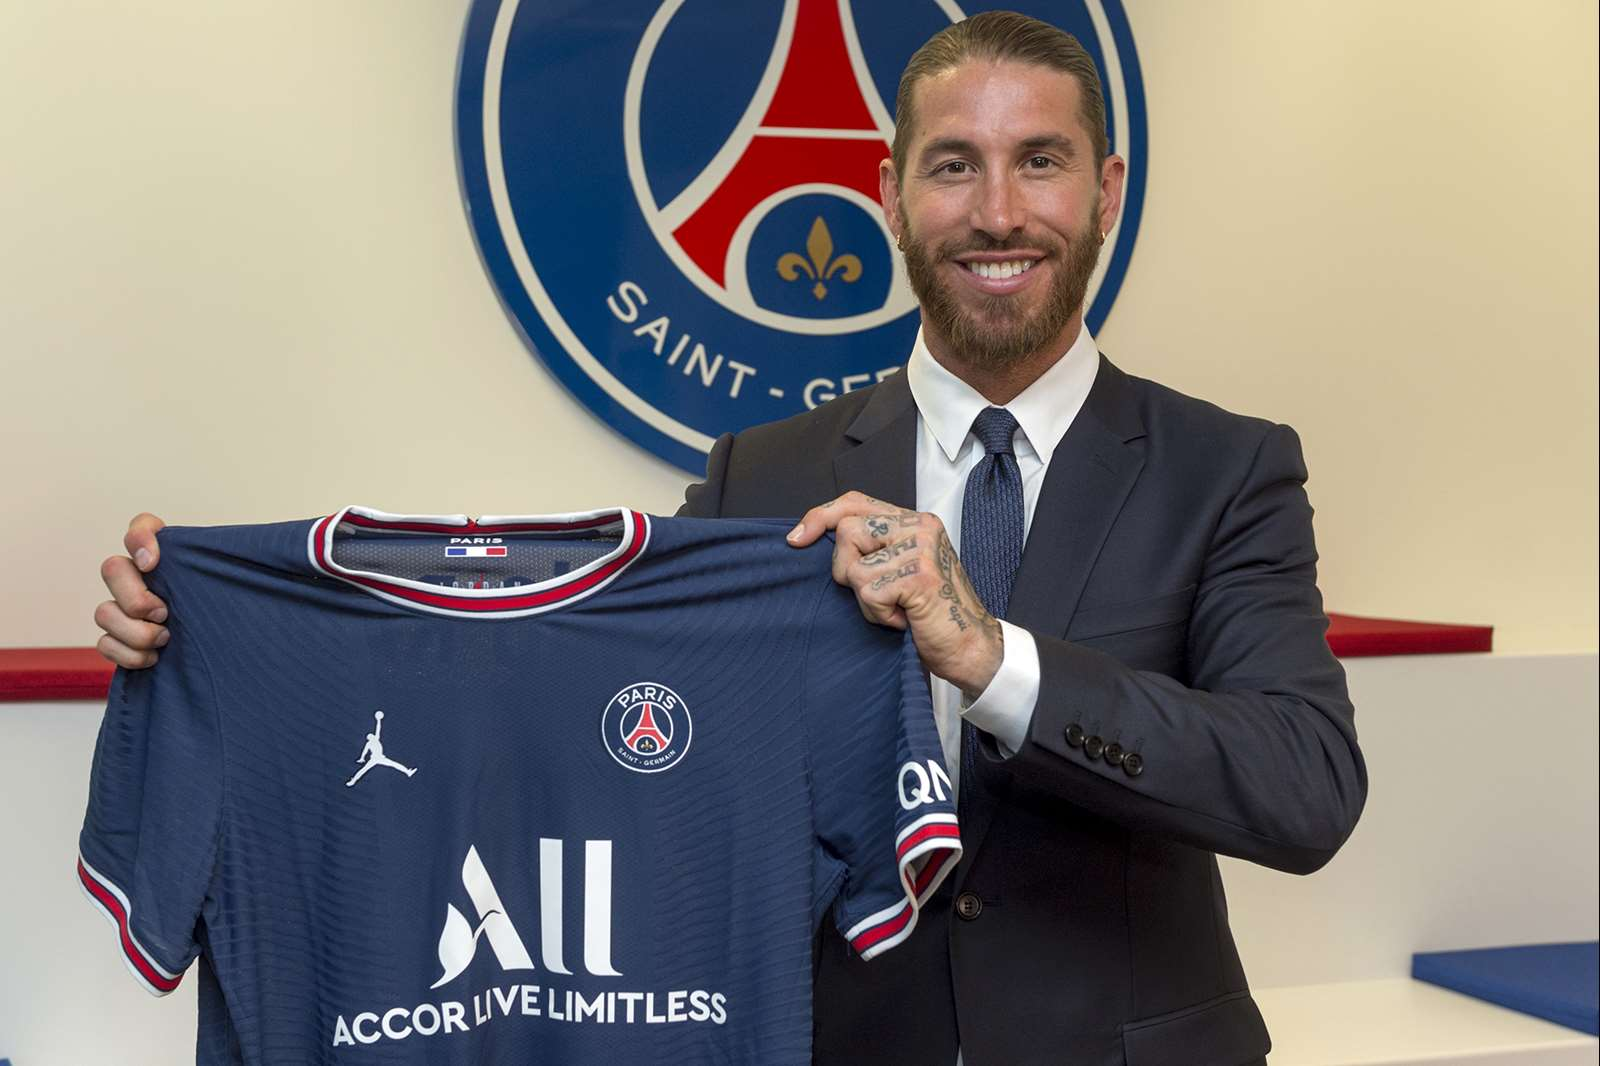 OFFICIAL: Ramos Joins PSG On Two-Year Contract